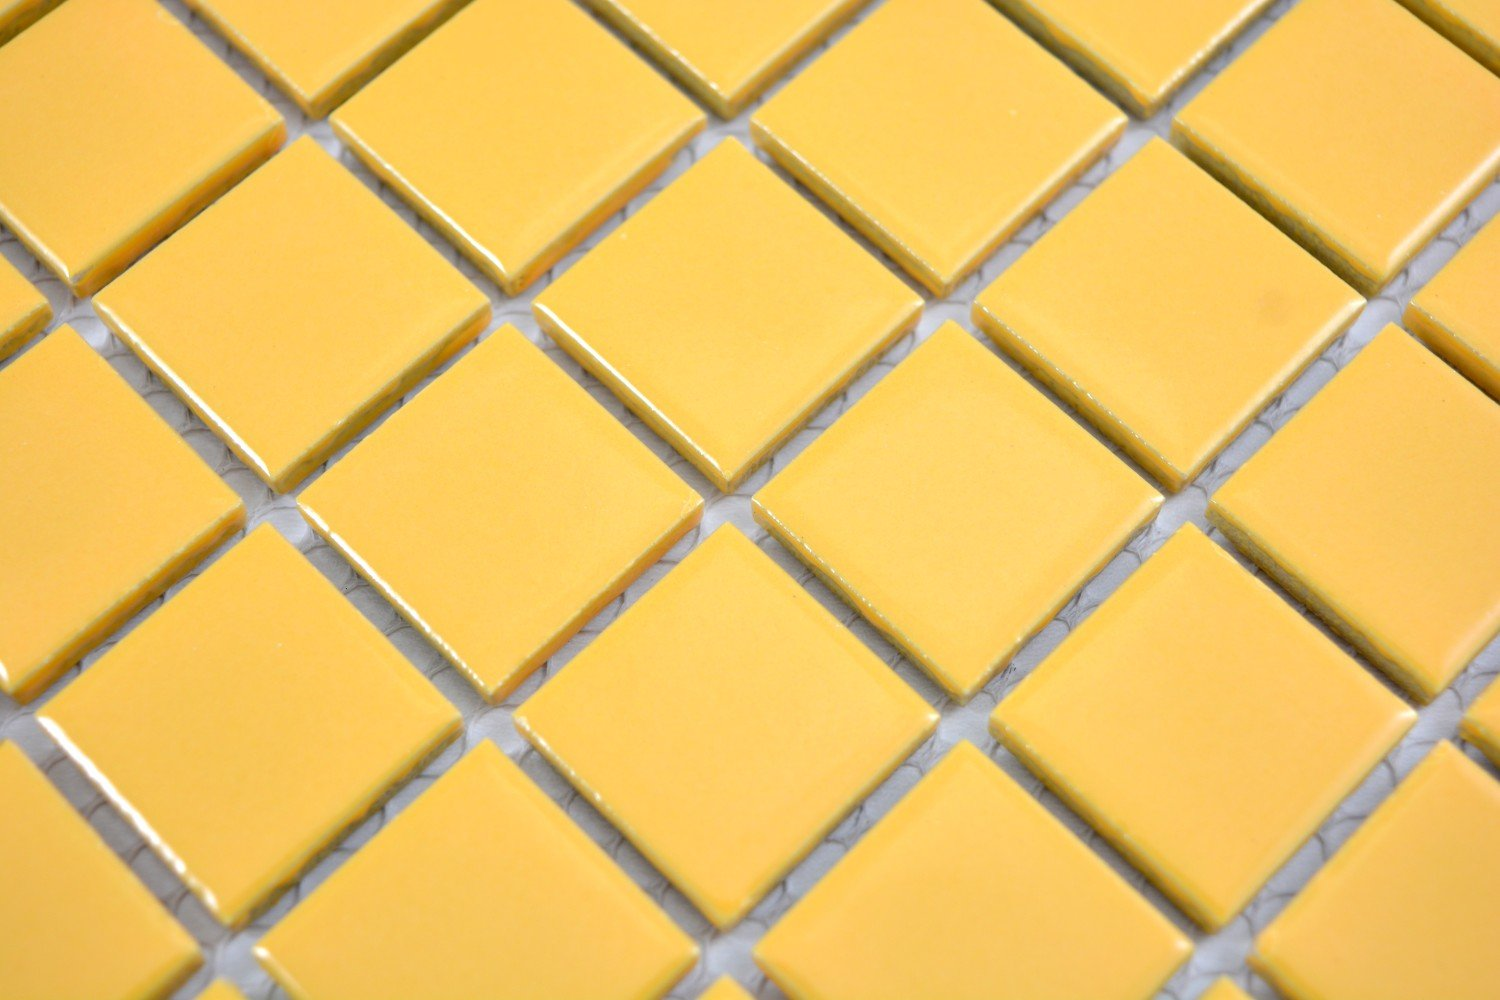 showers kitchens Ceramic mosaic tiles yellow with glossy finish for walls 1 mat bathrooms